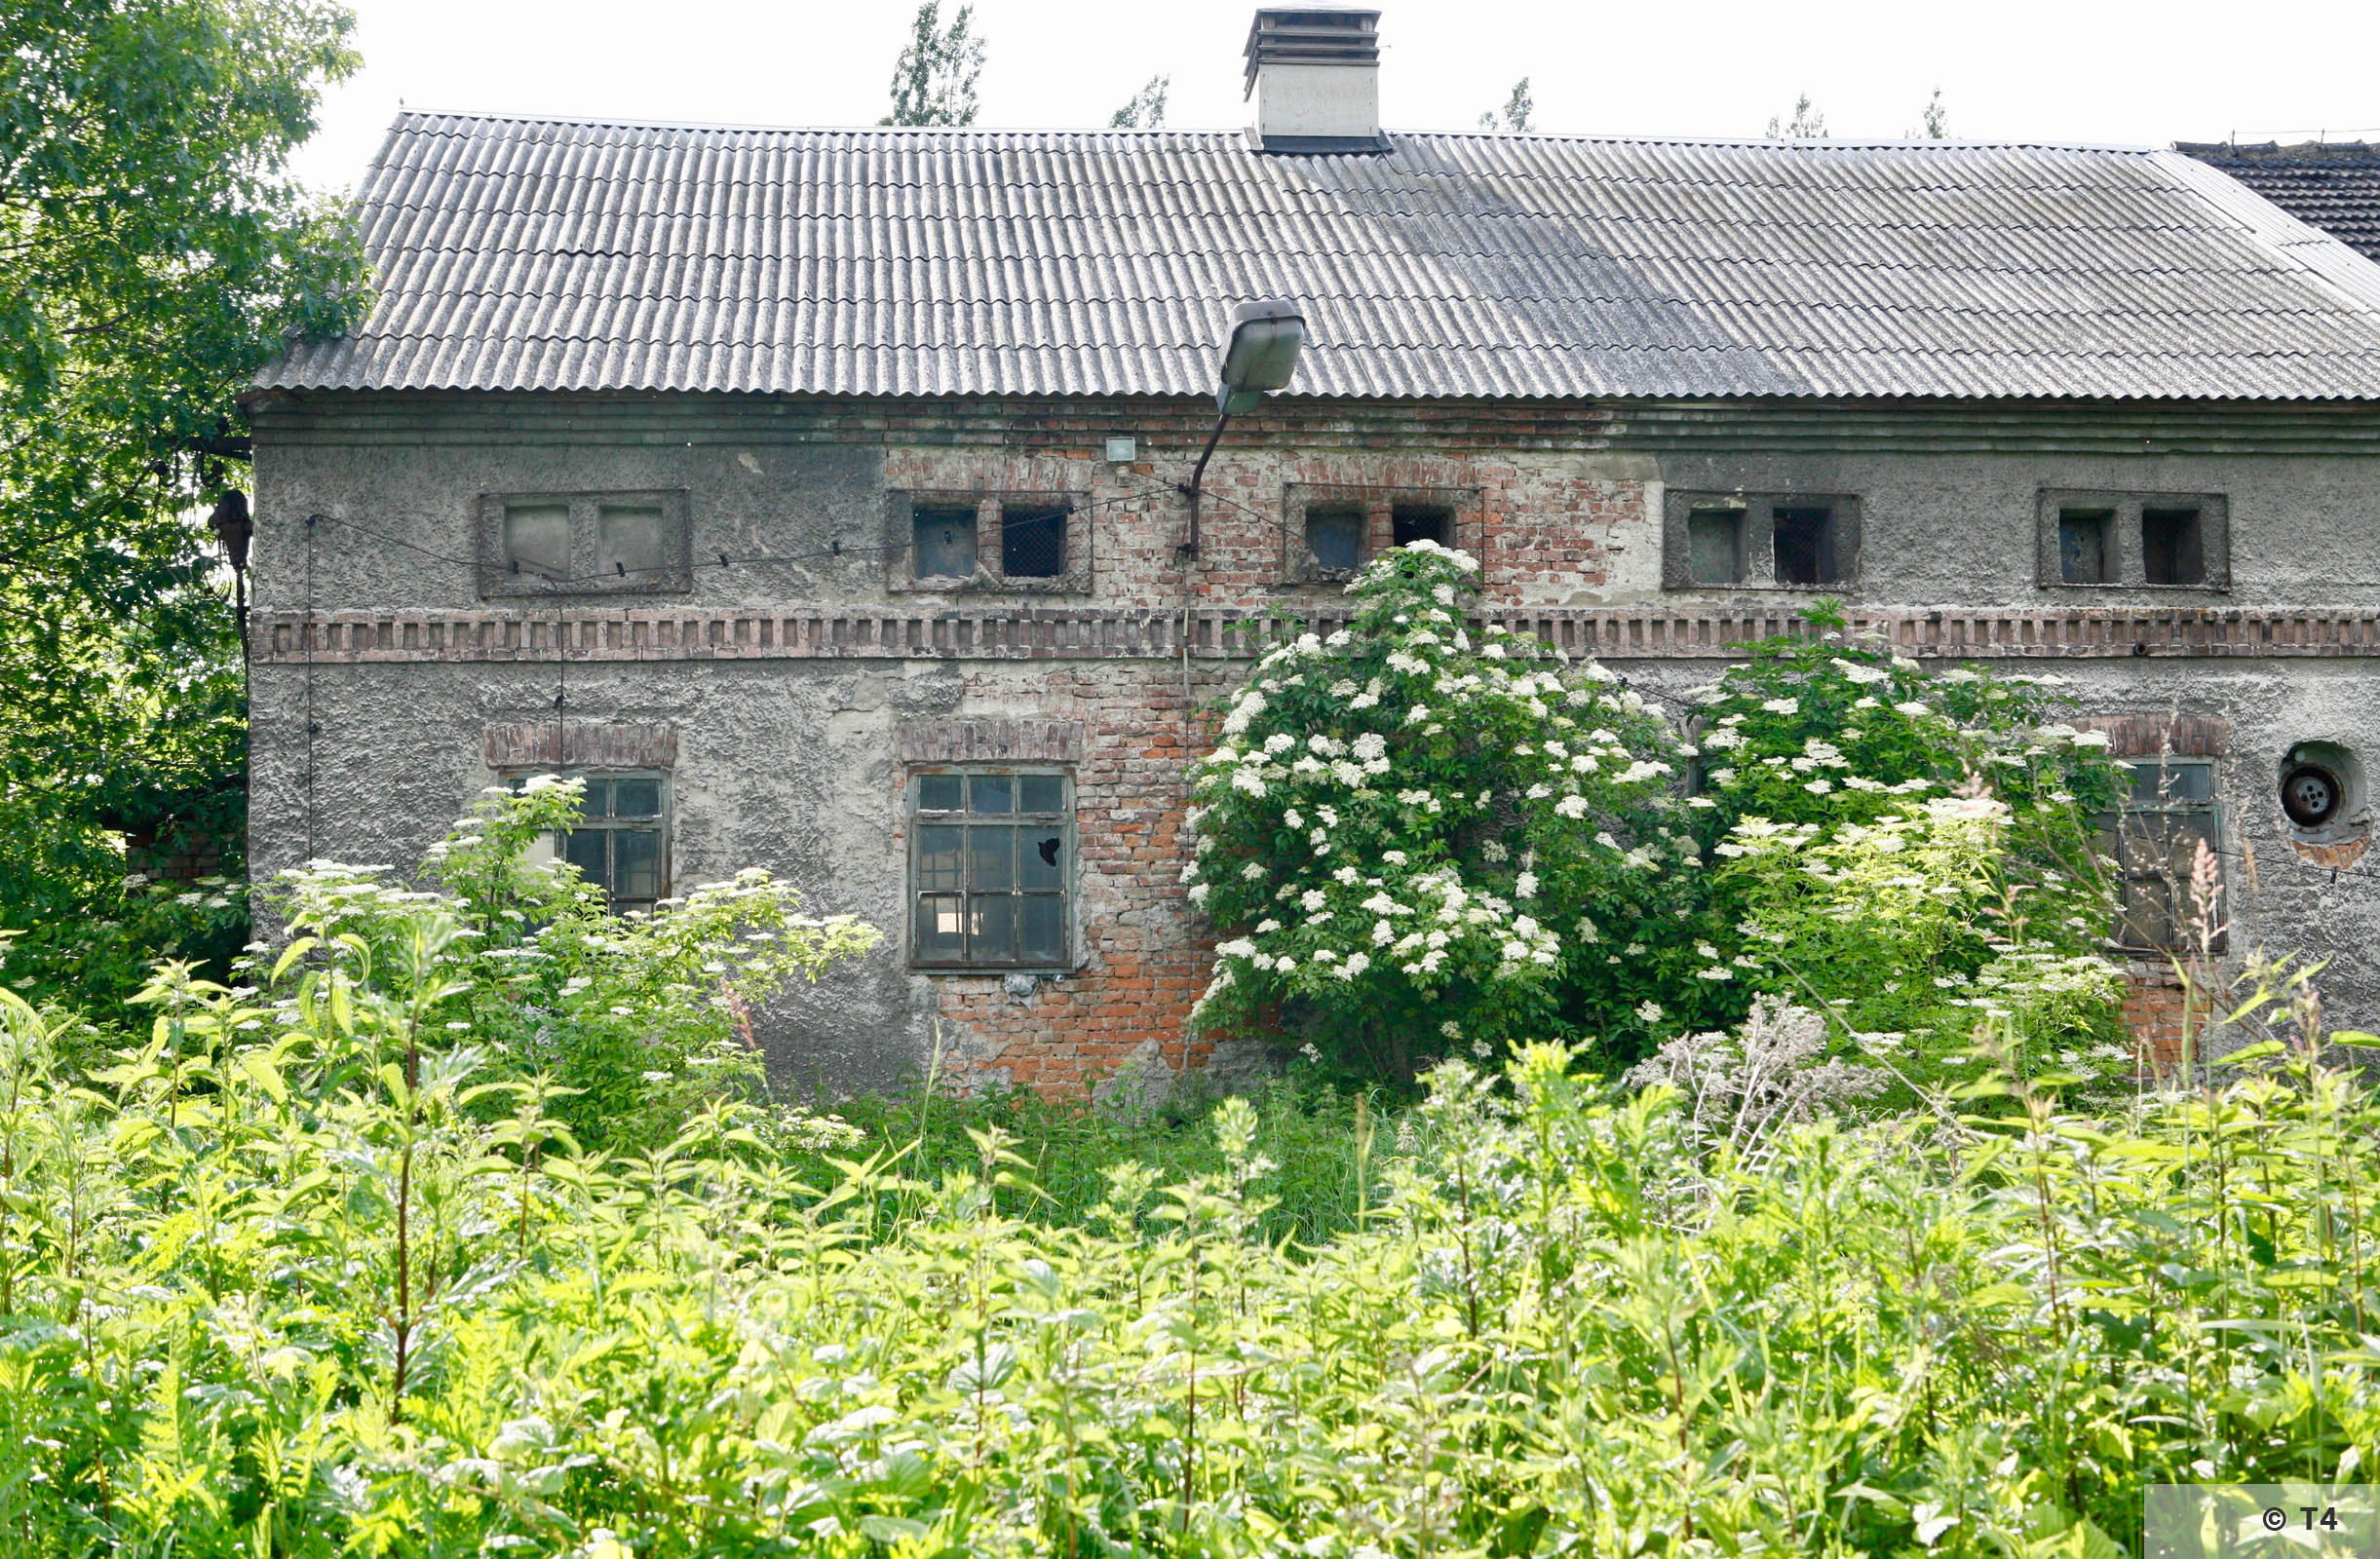 Stone stable building where prisoners lived.from outside the former sub camp. 2006 T4 6709